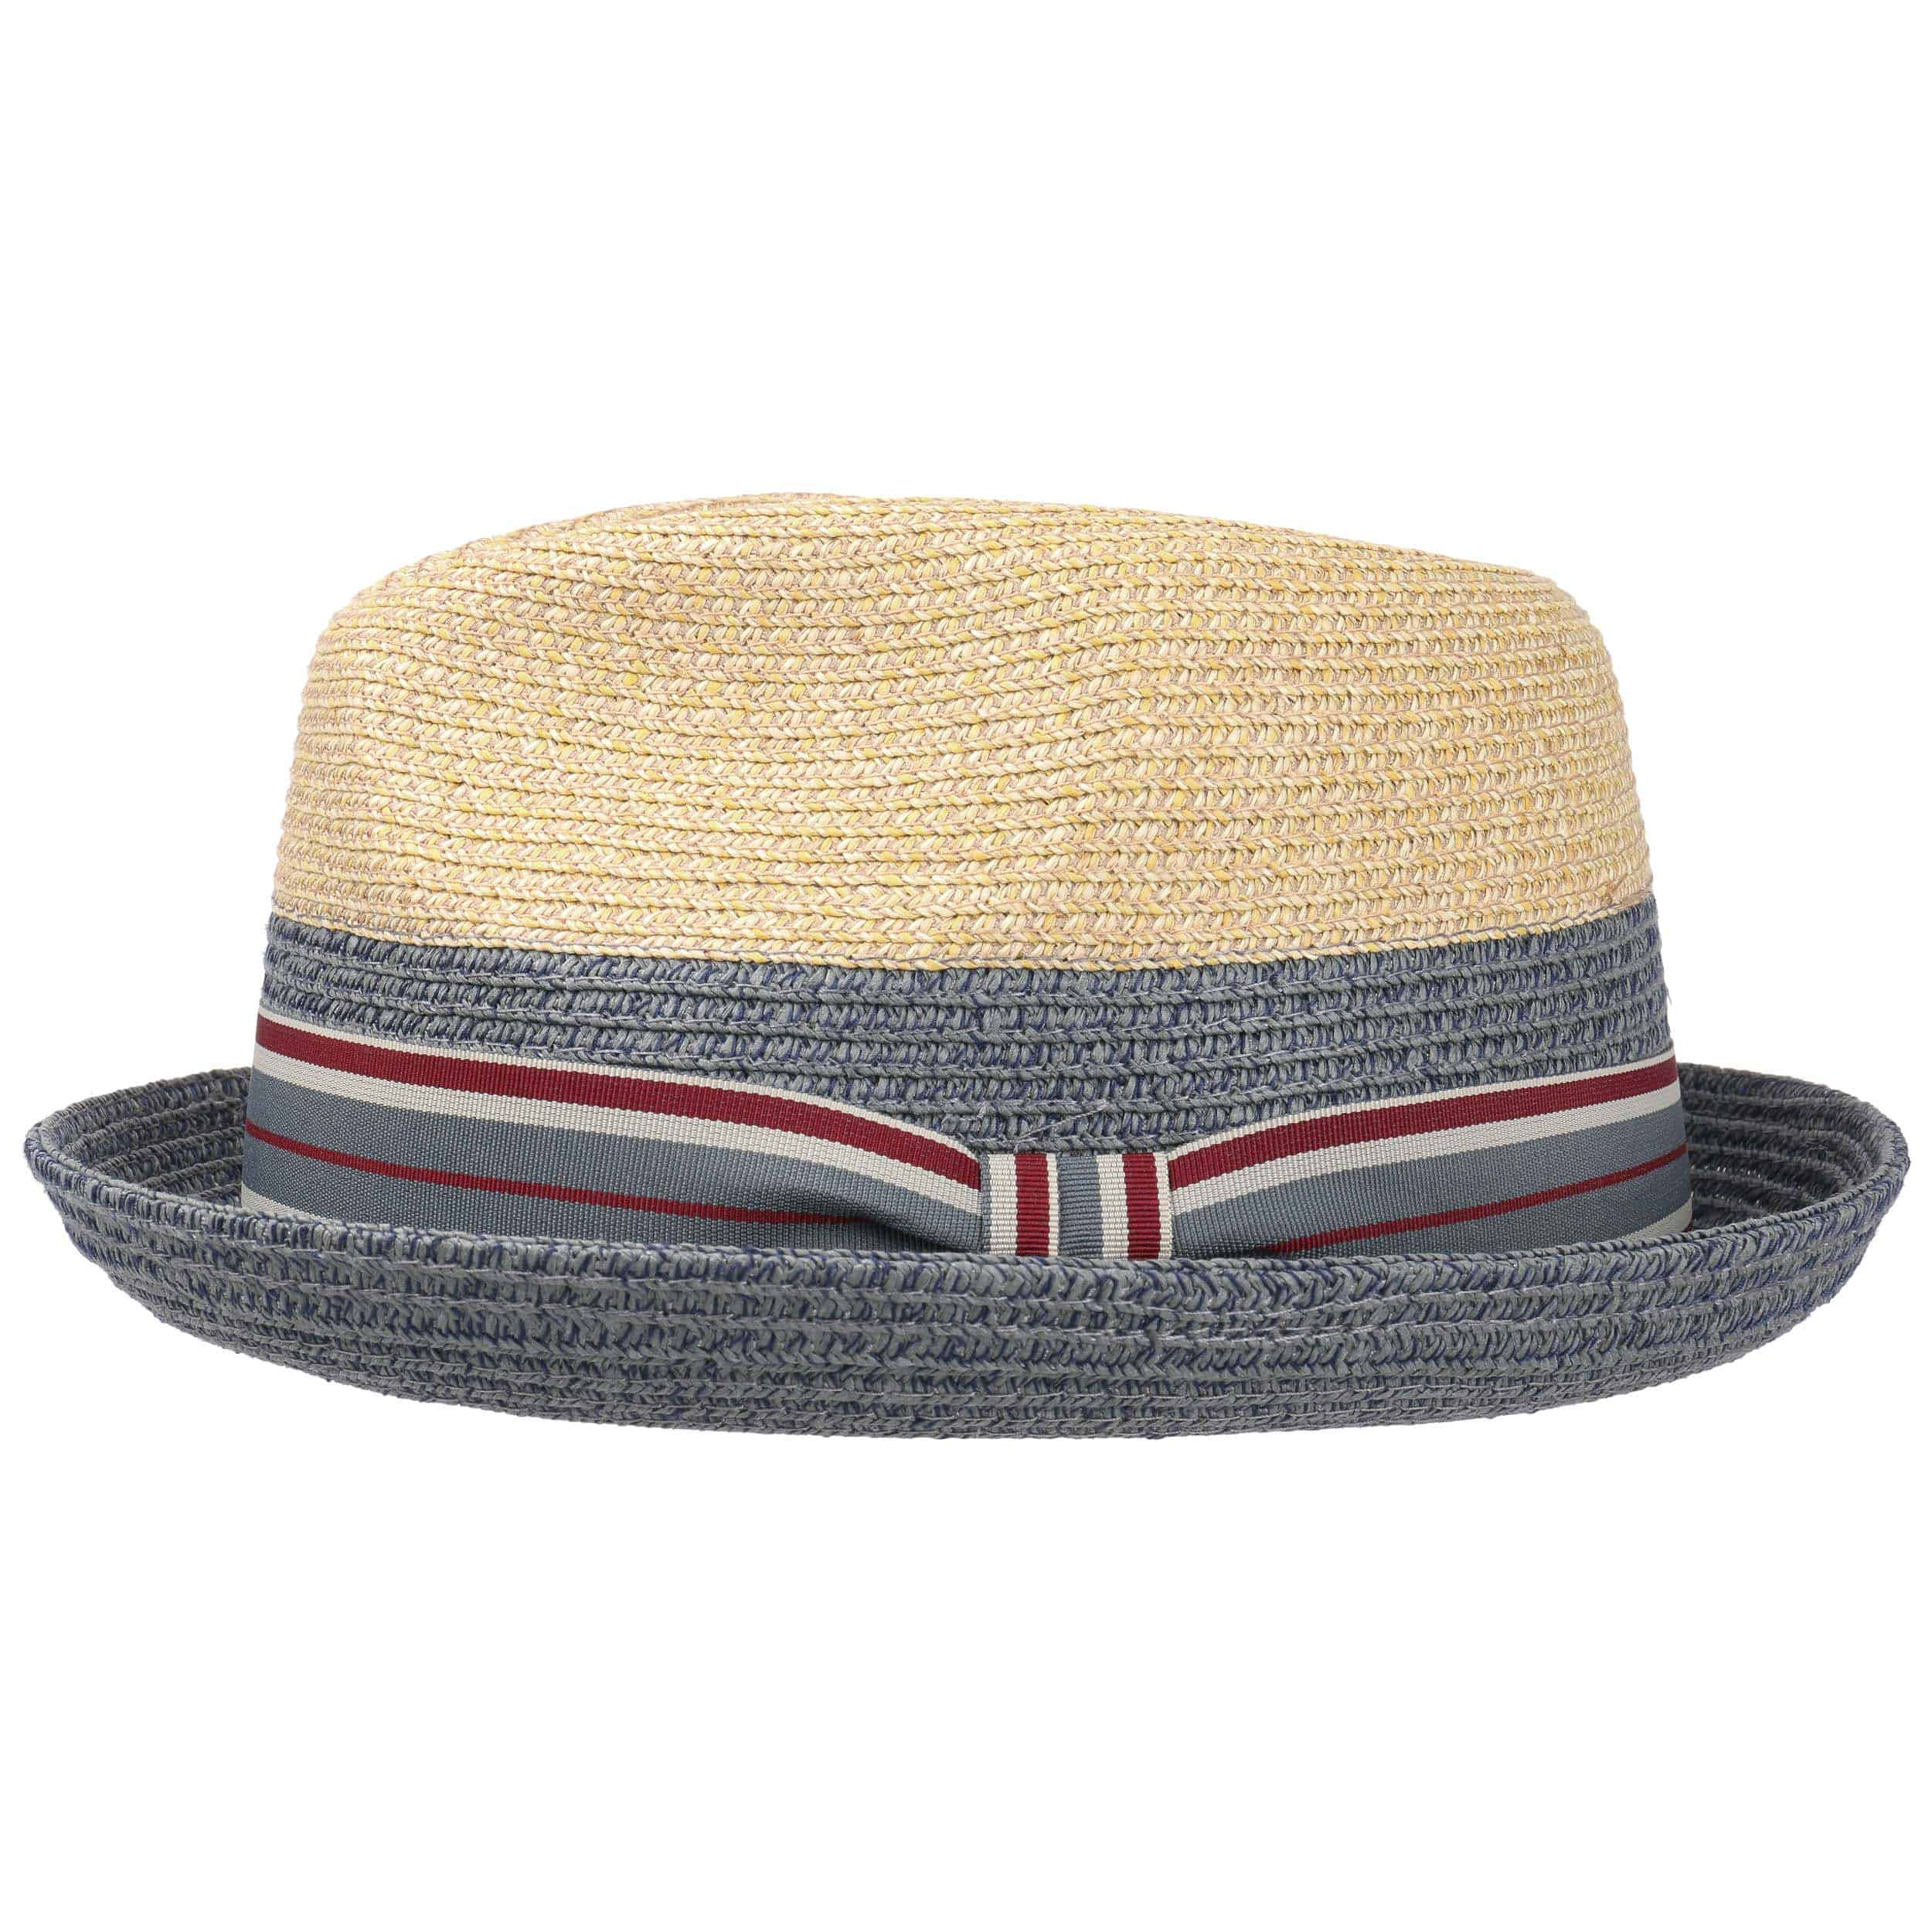 ... Rokit Player Summer Hat by Bailey of Hollywood - nature-blue 4 b8a494e0e70